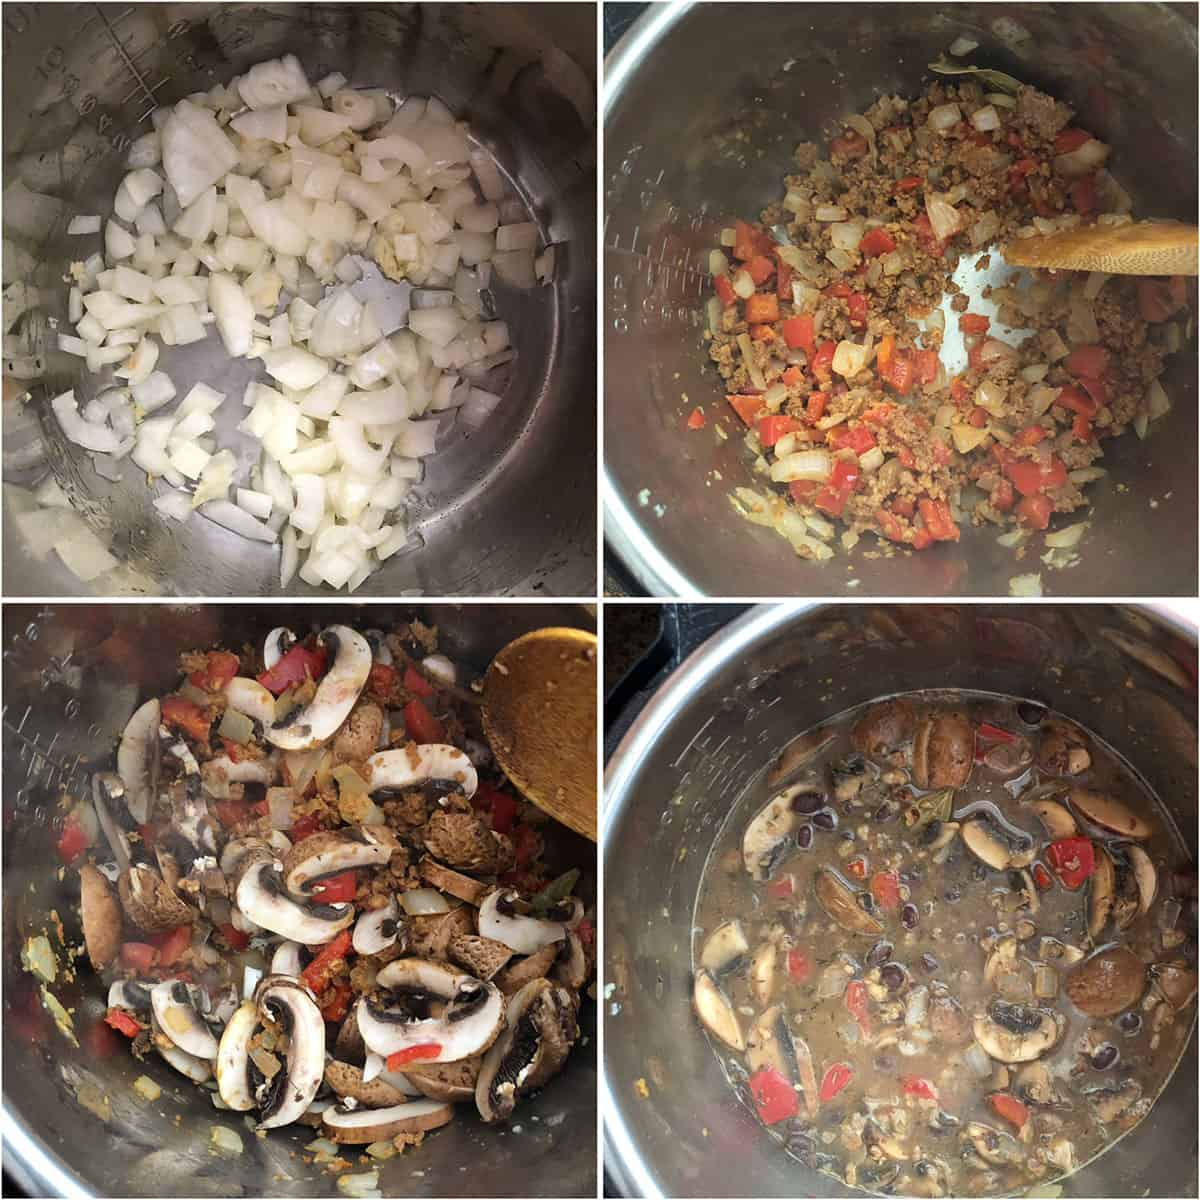 Sautéed onions with garlic, peppers, soy crumbles, mushrooms and simmered in broth